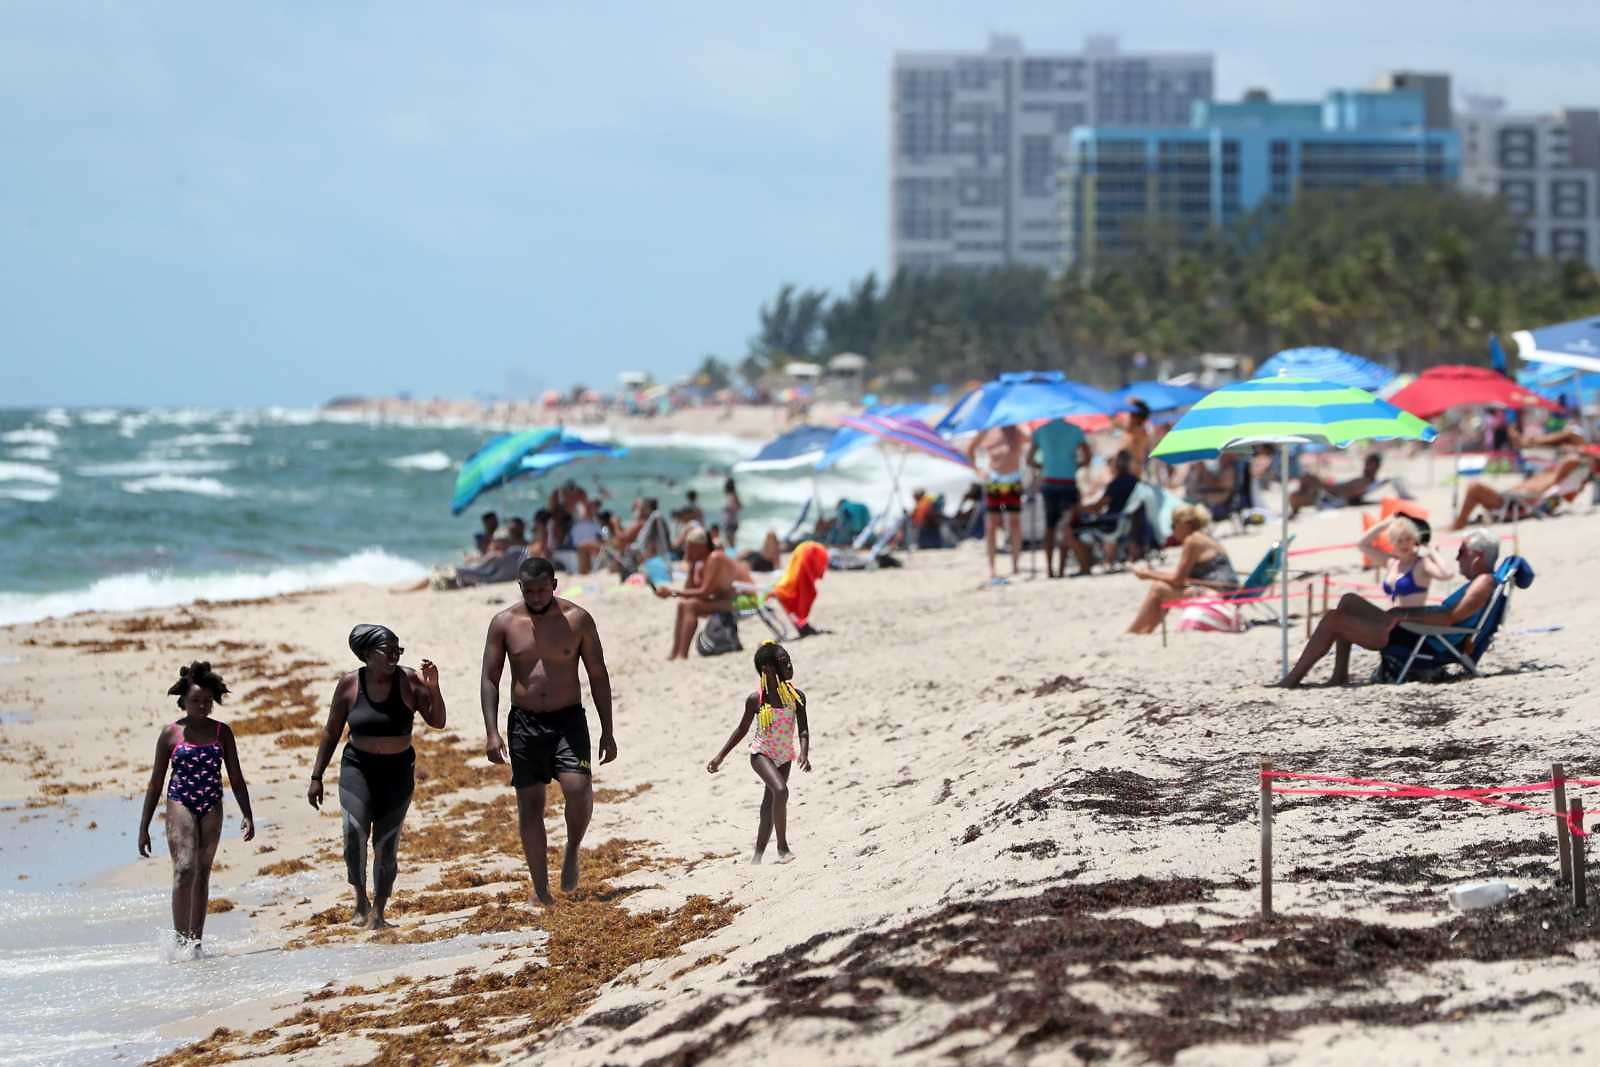 Labor Day Weekend Will Set The Course for The Coronavirus This Fall: 'We May Have Some Hard Days Ahead'